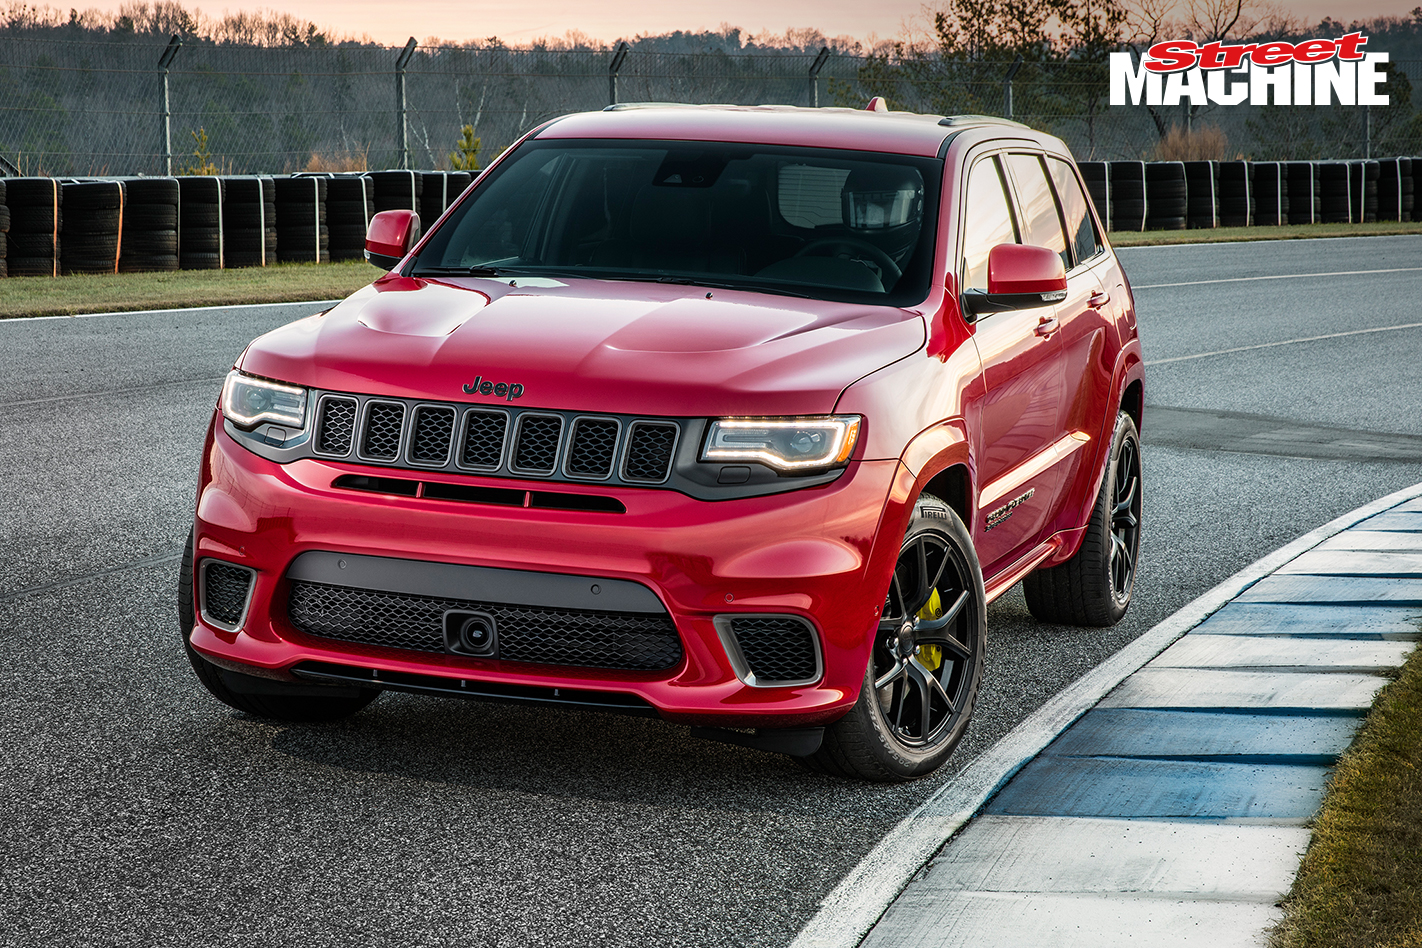 707hp hellcat powered jeep grand cherokee trackhawk revealed street machine. Black Bedroom Furniture Sets. Home Design Ideas